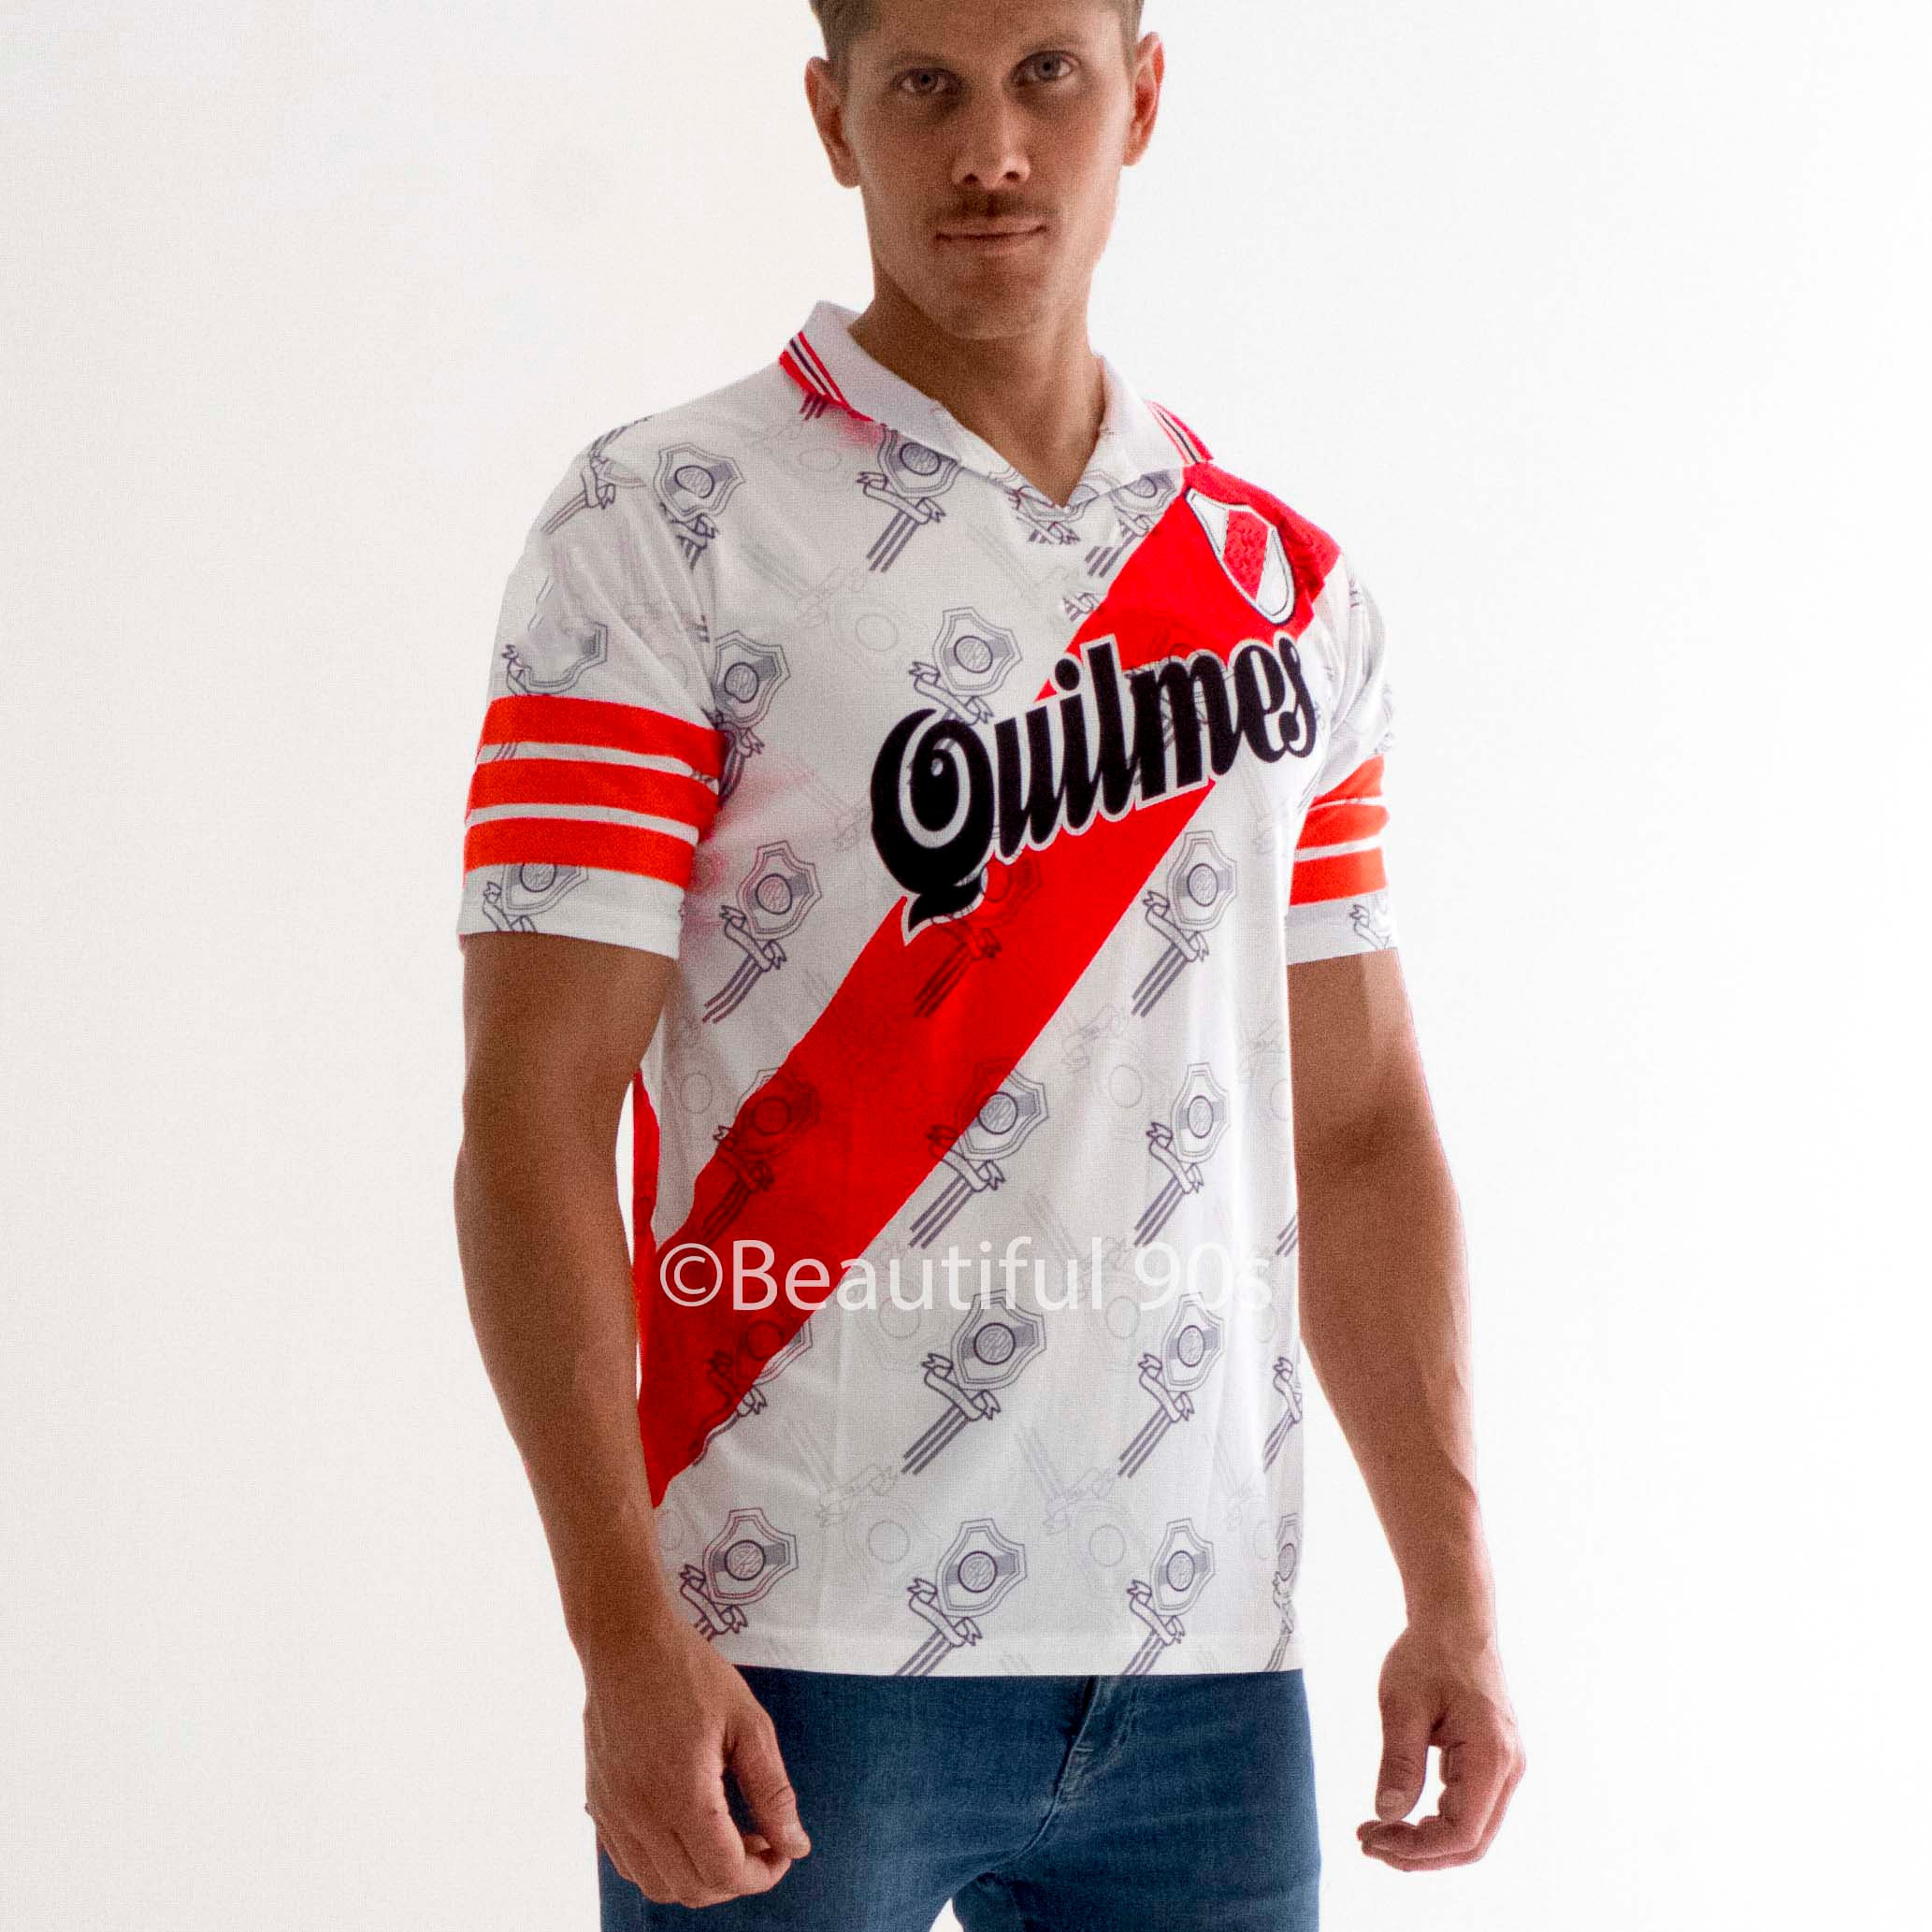 1996-1997 River Plate Quilmes replica retro football shirt